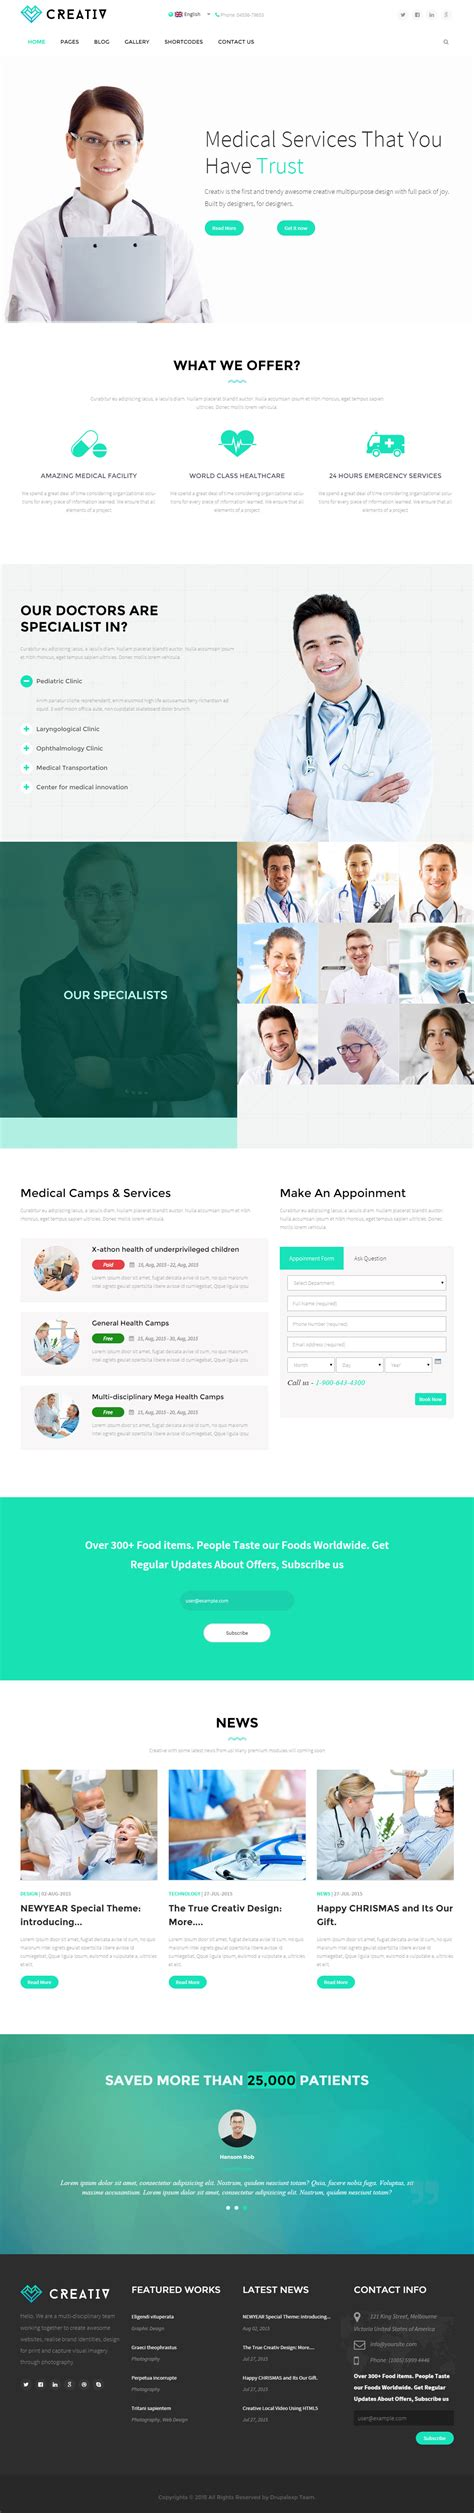 drupal themes hospital 5 best drupal medical and healthcare themes 2017